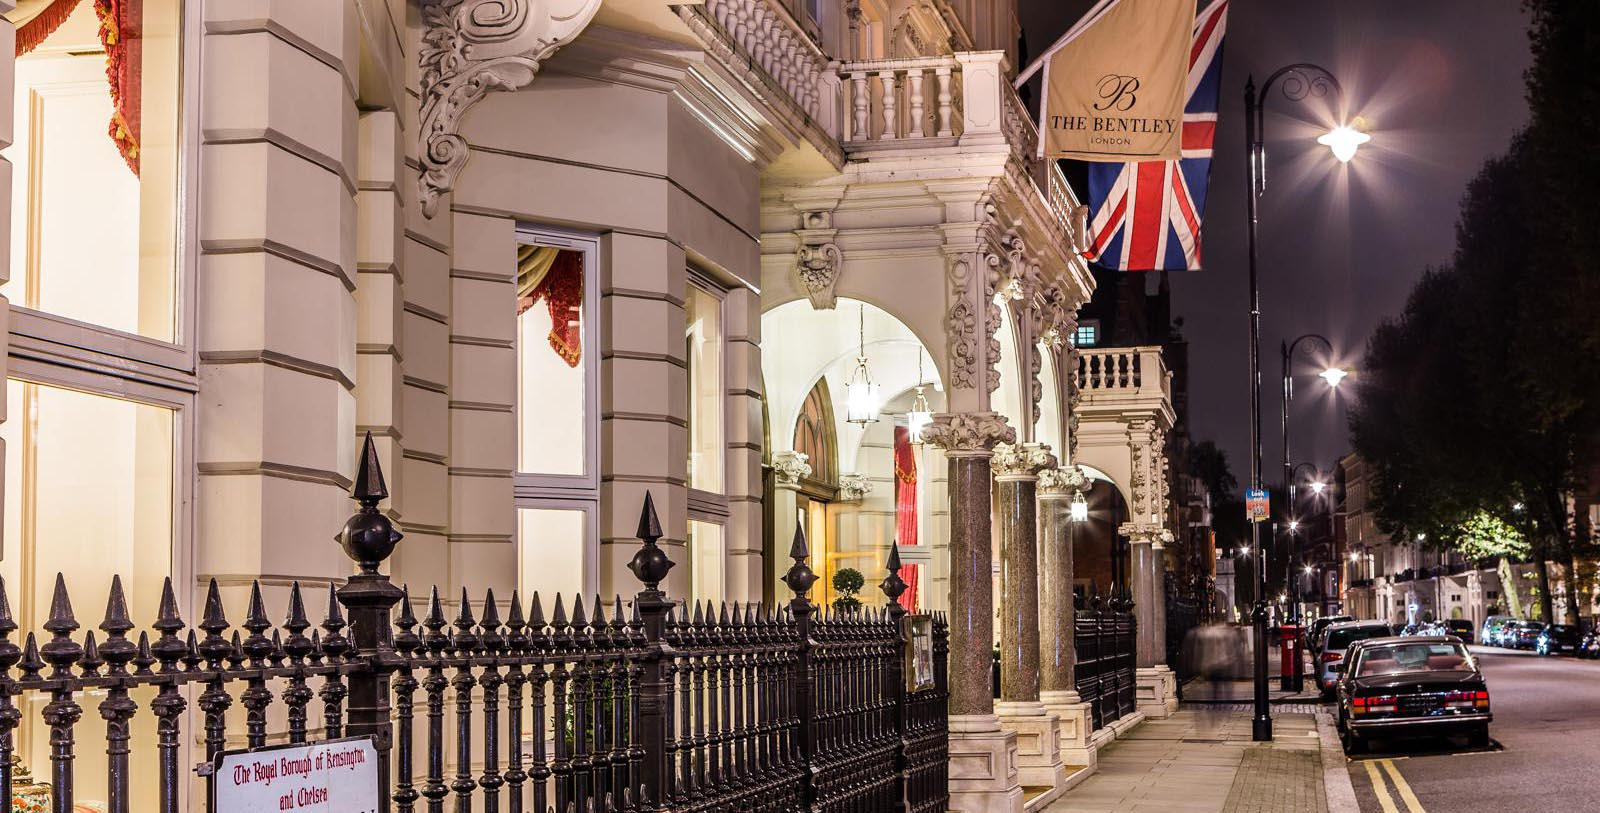 Image of Hotel Front Entrance at The Bentley London, 1880, Member of Historic Hotels Worldwide, in London, England, United Kingdom, Special Offers, Discounted Rates, Families, Romantic Escape, Honeymoons, Anniversaries, Reunions